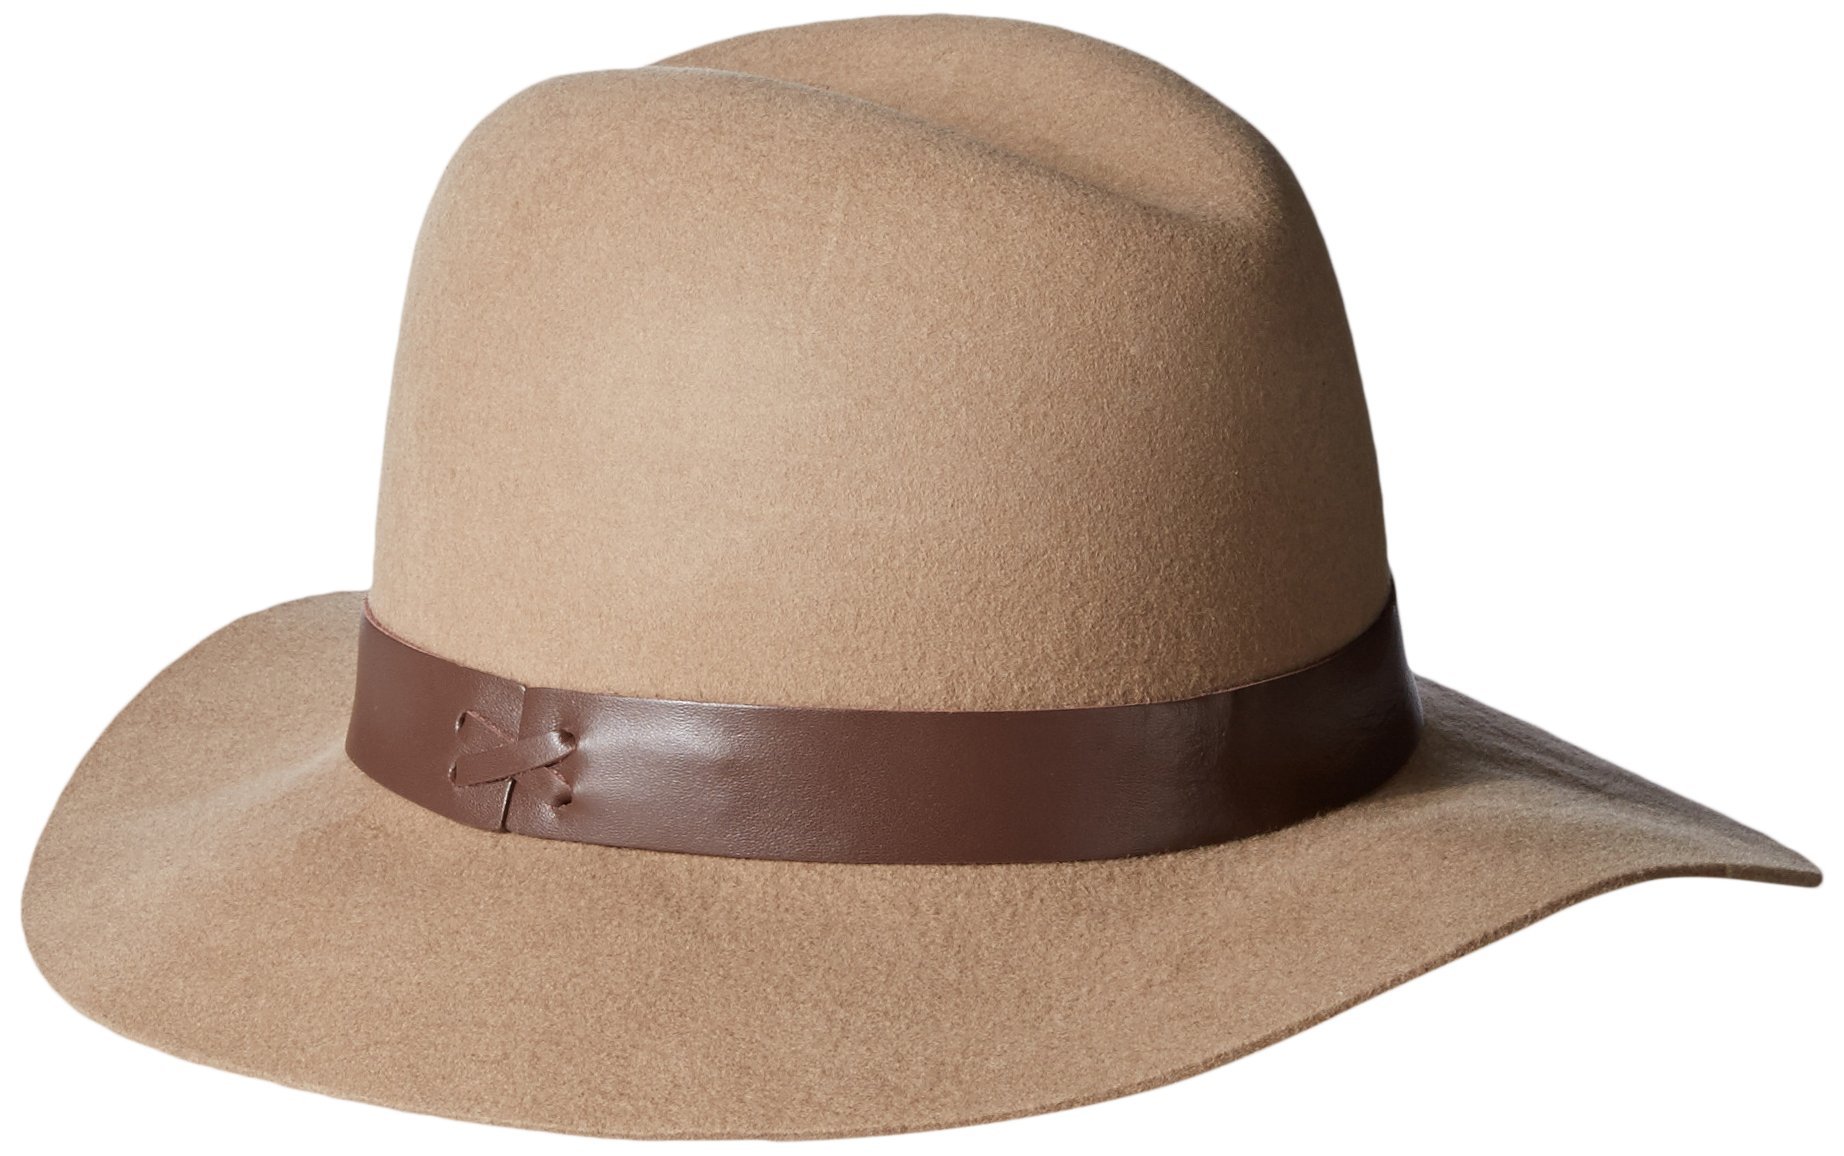 Hat Attack Women's Wool Felt Medium Brim Hat, Taupe/Chocolate, One Size by Hat Attack